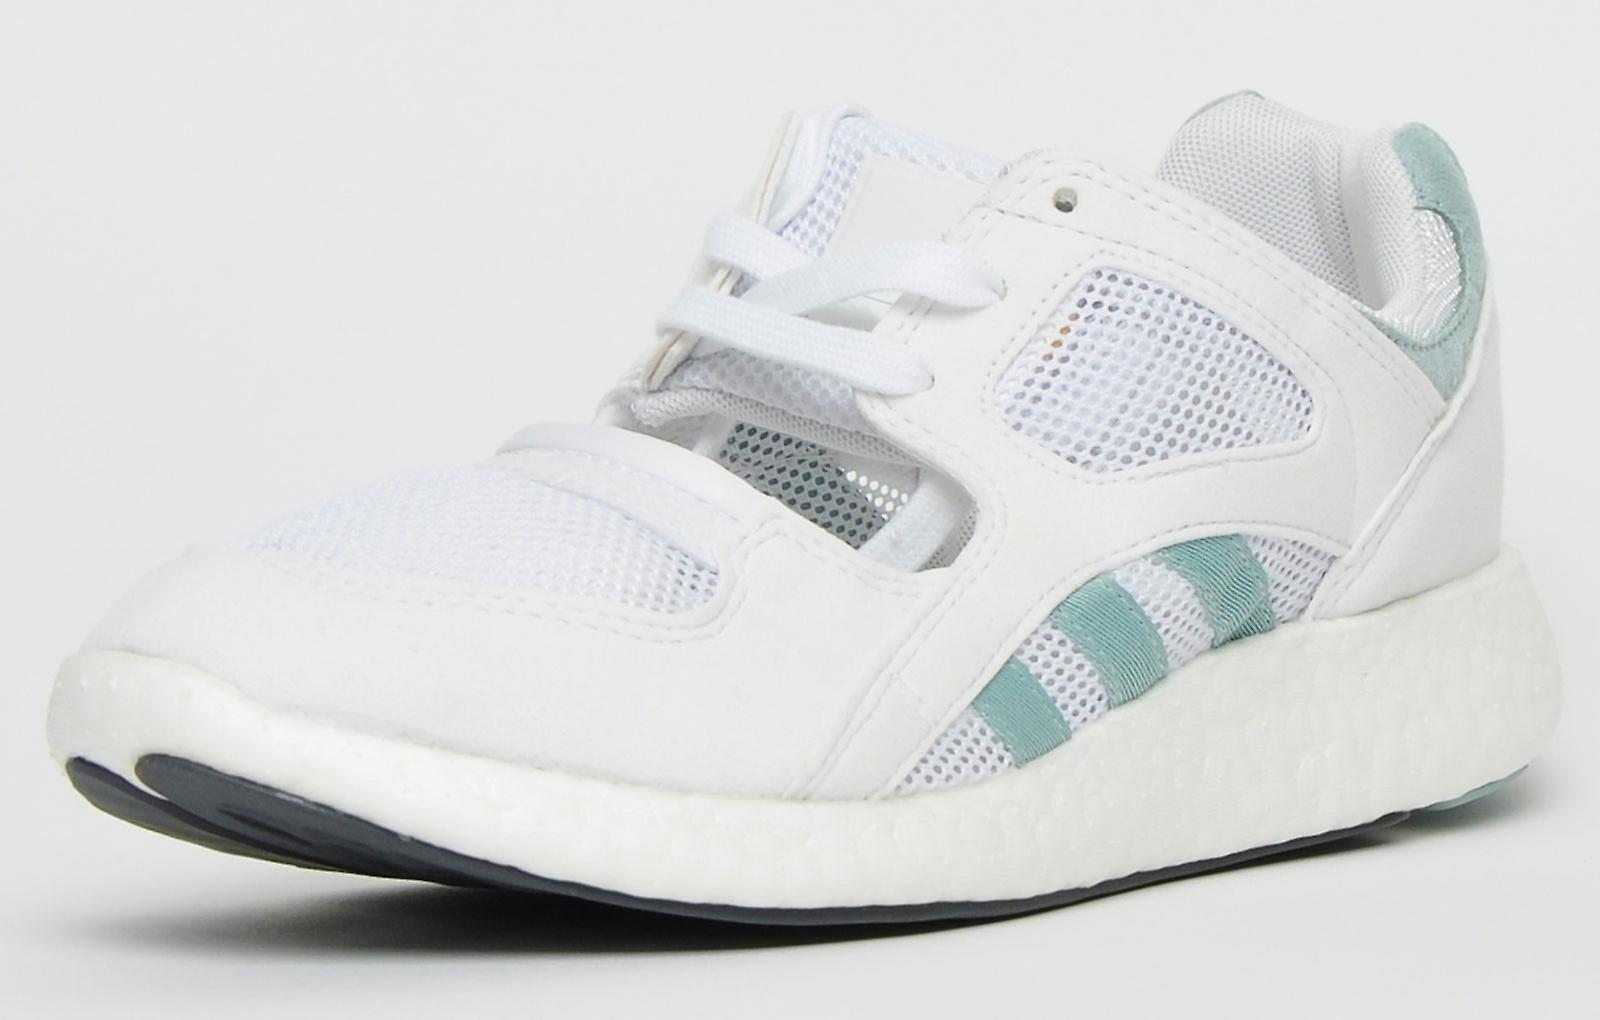 Adidas Originals Equipment Racing Boost 91/16 White / Tactile Green GyL09